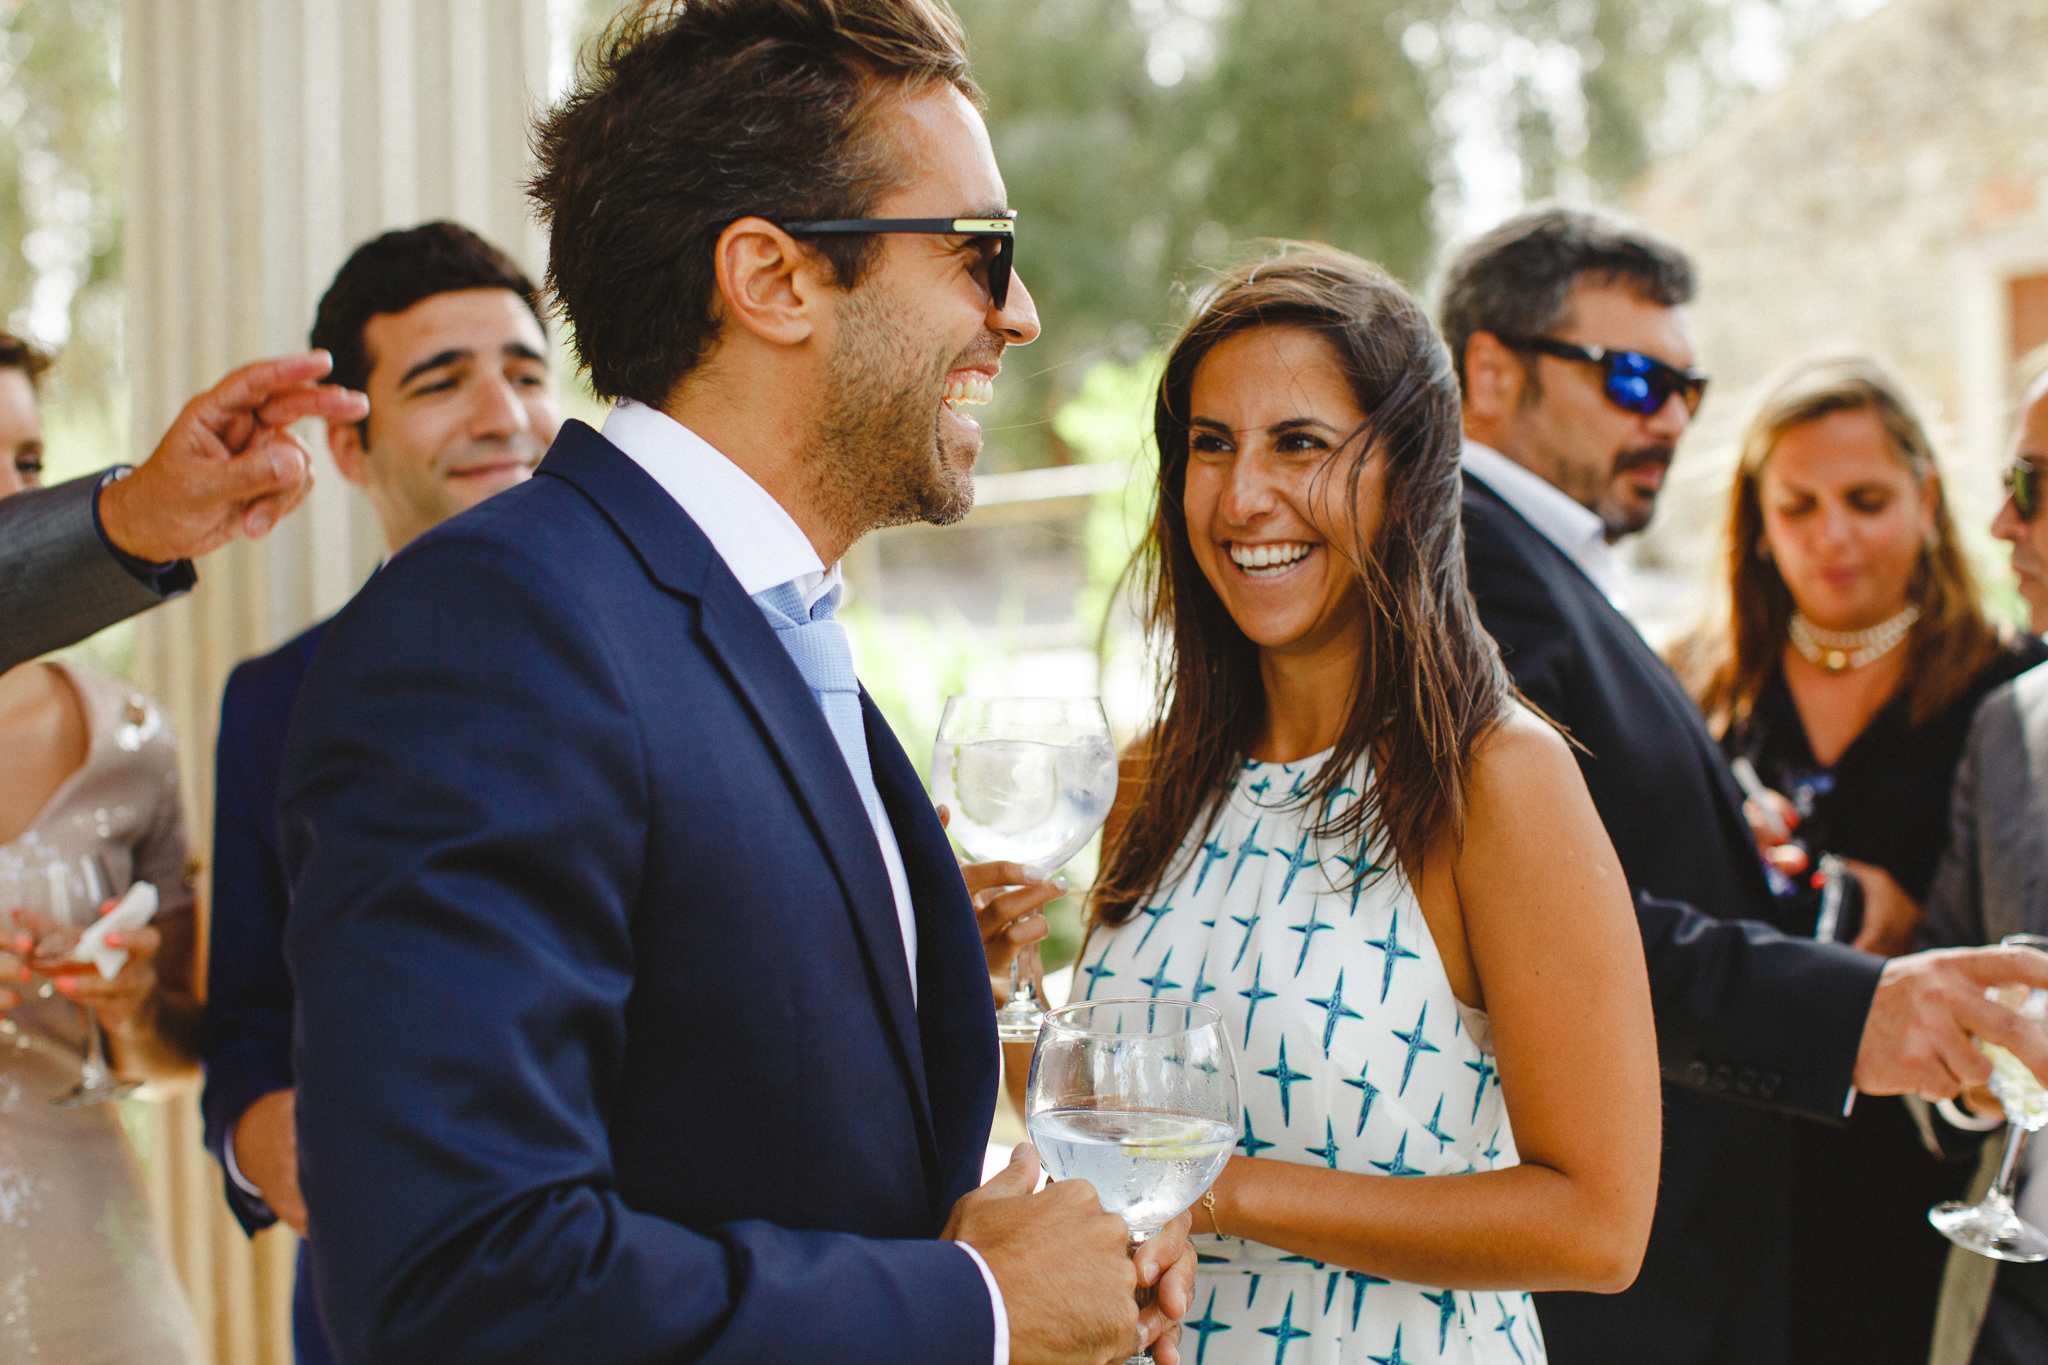 Weddings guests having fun during cocktail